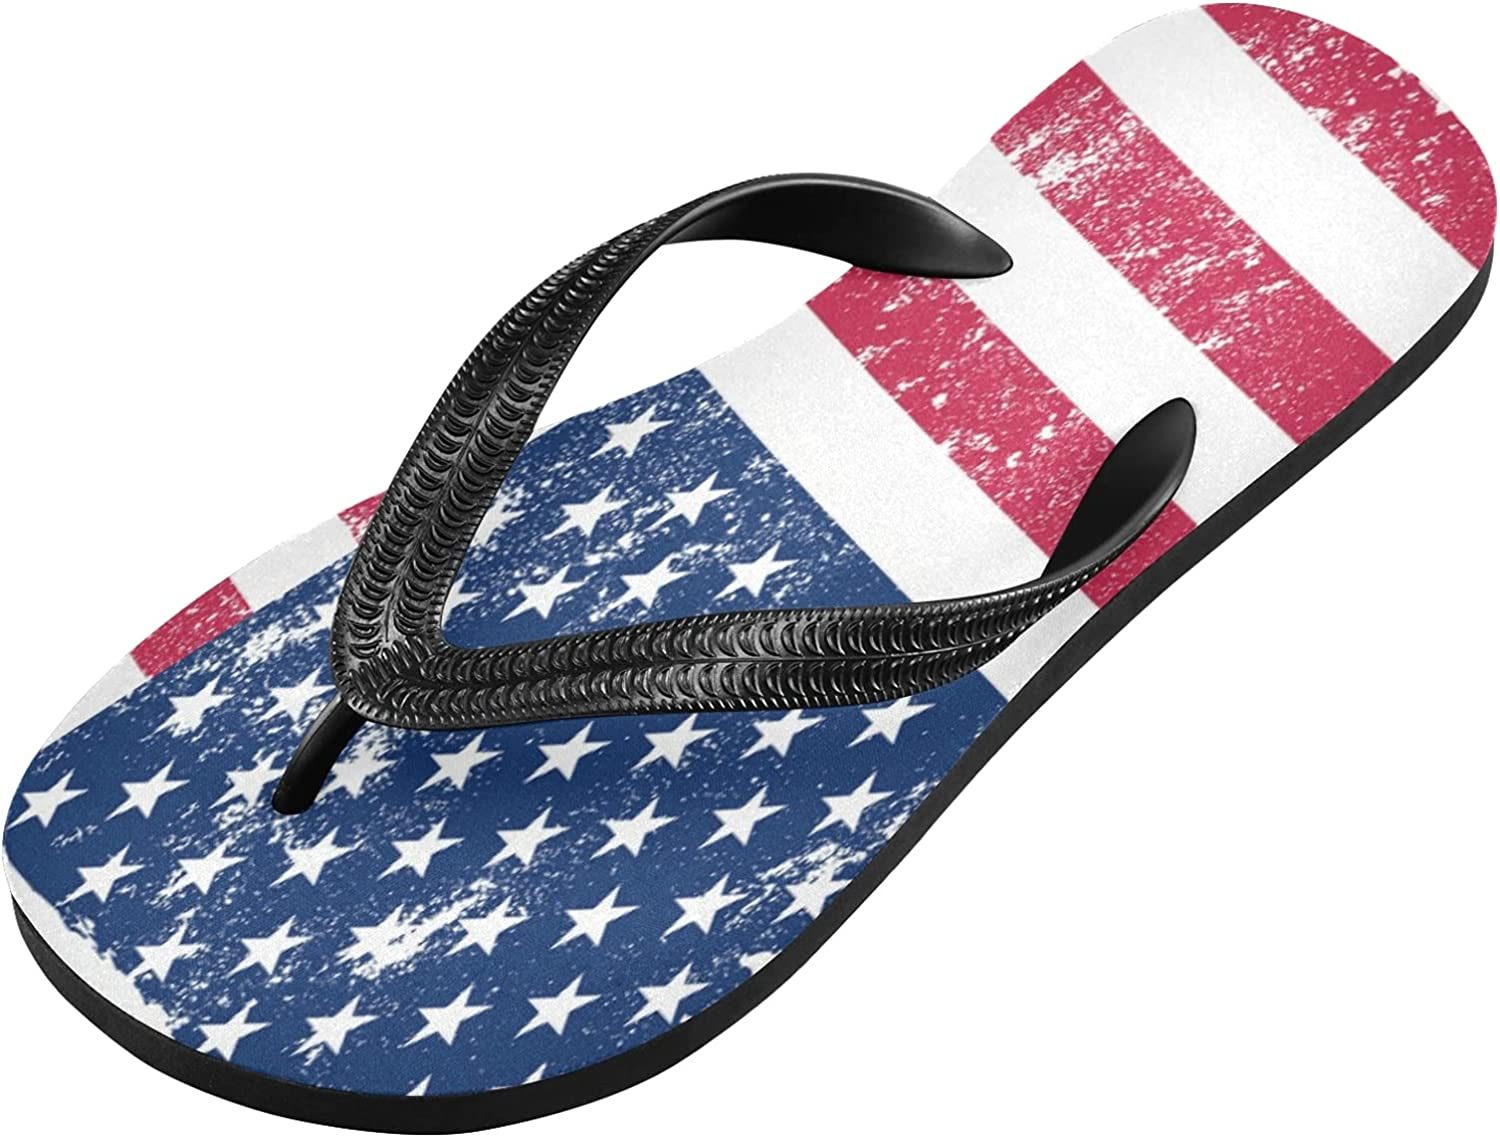 Qilmy Vintage American Flag Flip Non-sli Flop 4 years warranty Dealing full price reduction Lightweight Casual